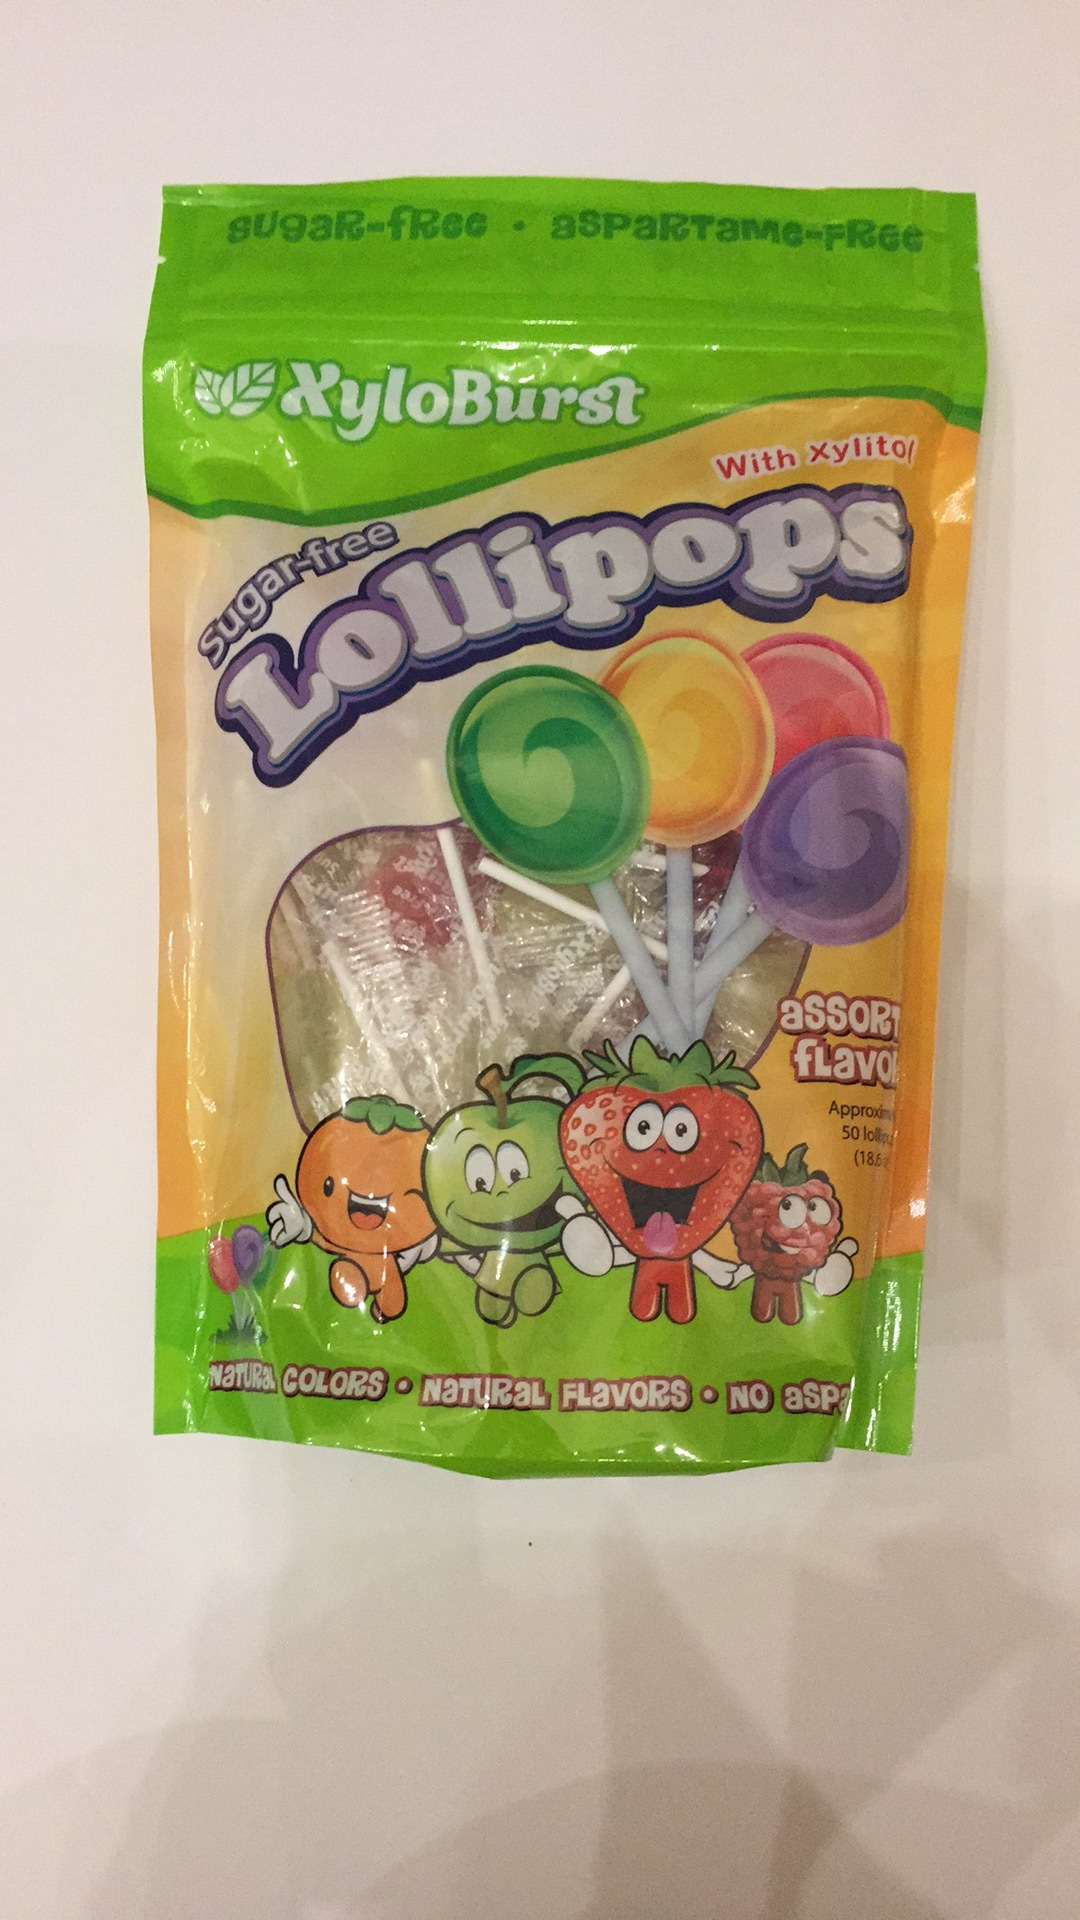 Sugar-free Lollipops | The Natural Products Brands Directory